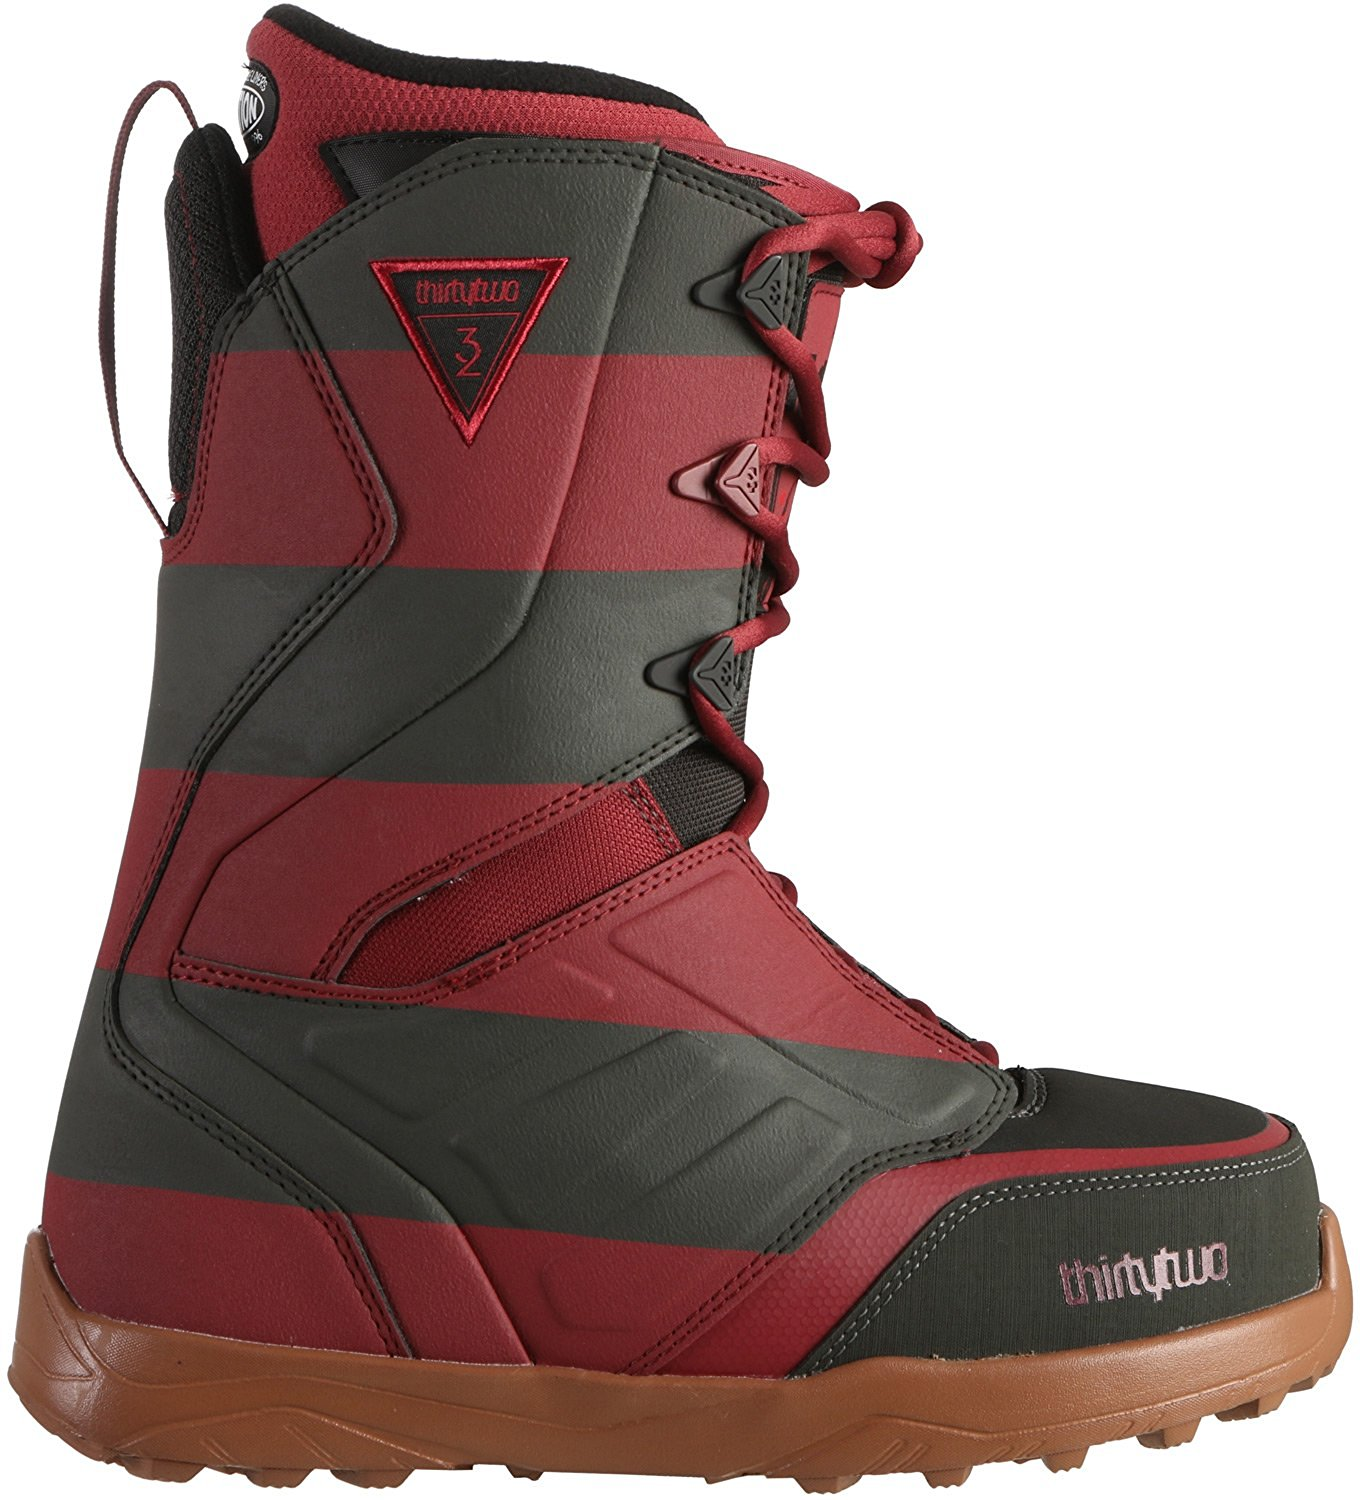 caba81faa37a Get Quotations · ThirtyTwo 17 18 Lashed Alito Men s Snowboarding Boots -  Black Red Gum